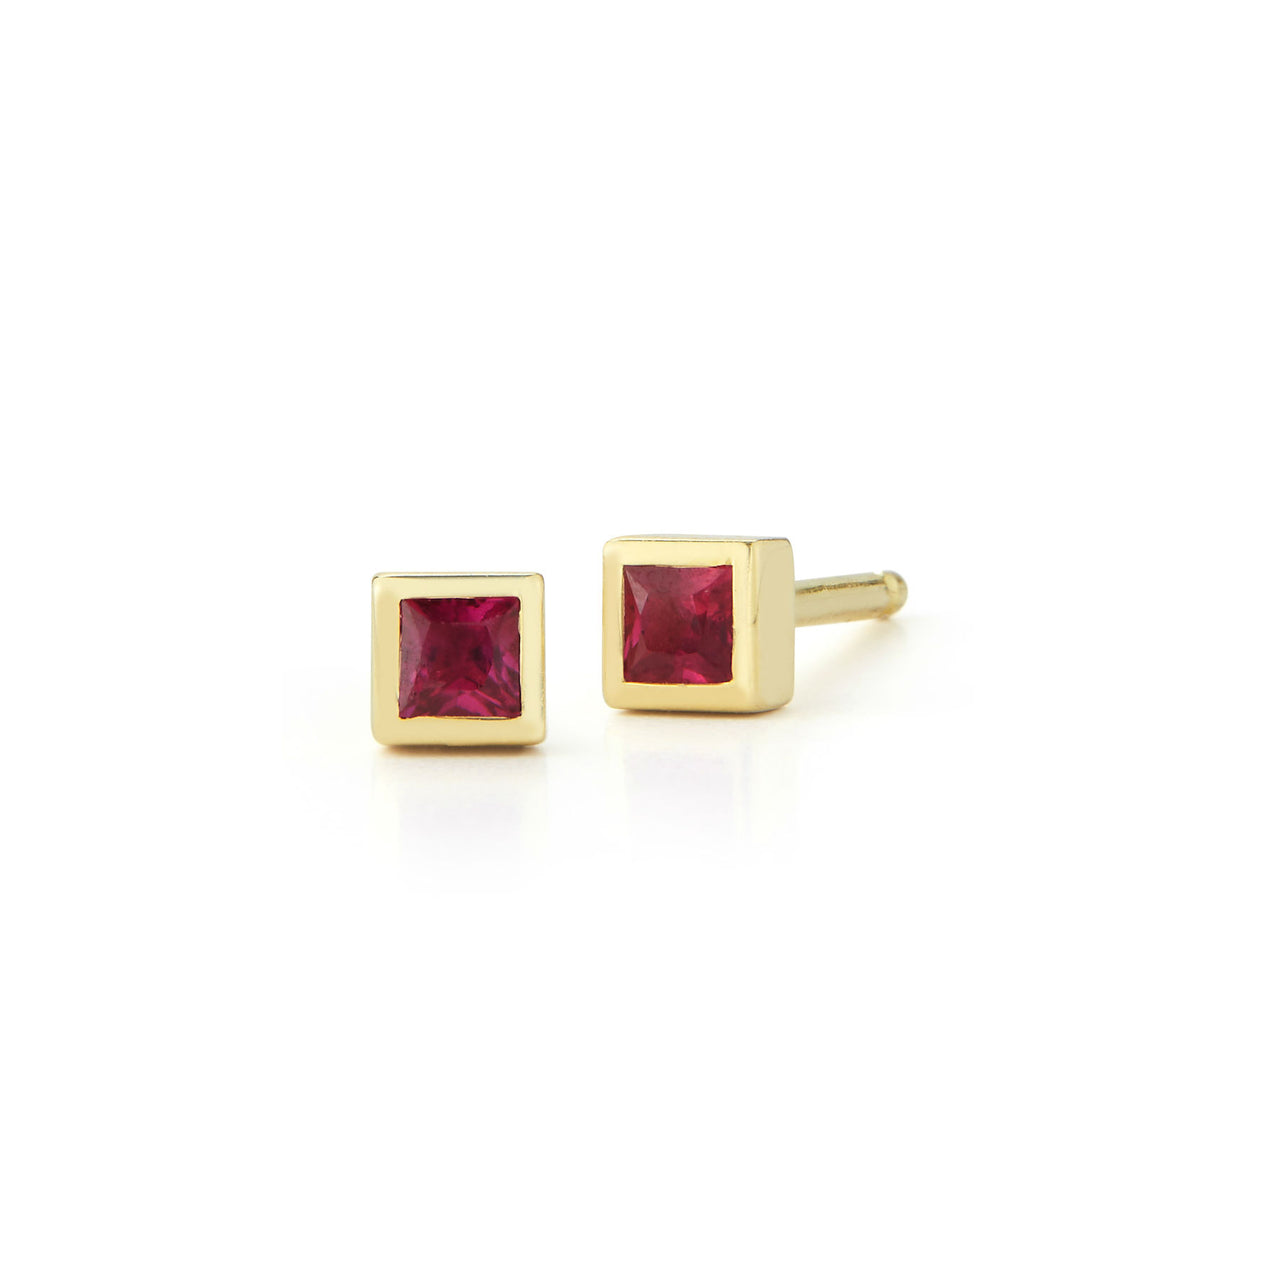 14k rose gold 2mm square ruby micro stud earring by Finn by Candice Pool Nesitat perfect for Valentines Day